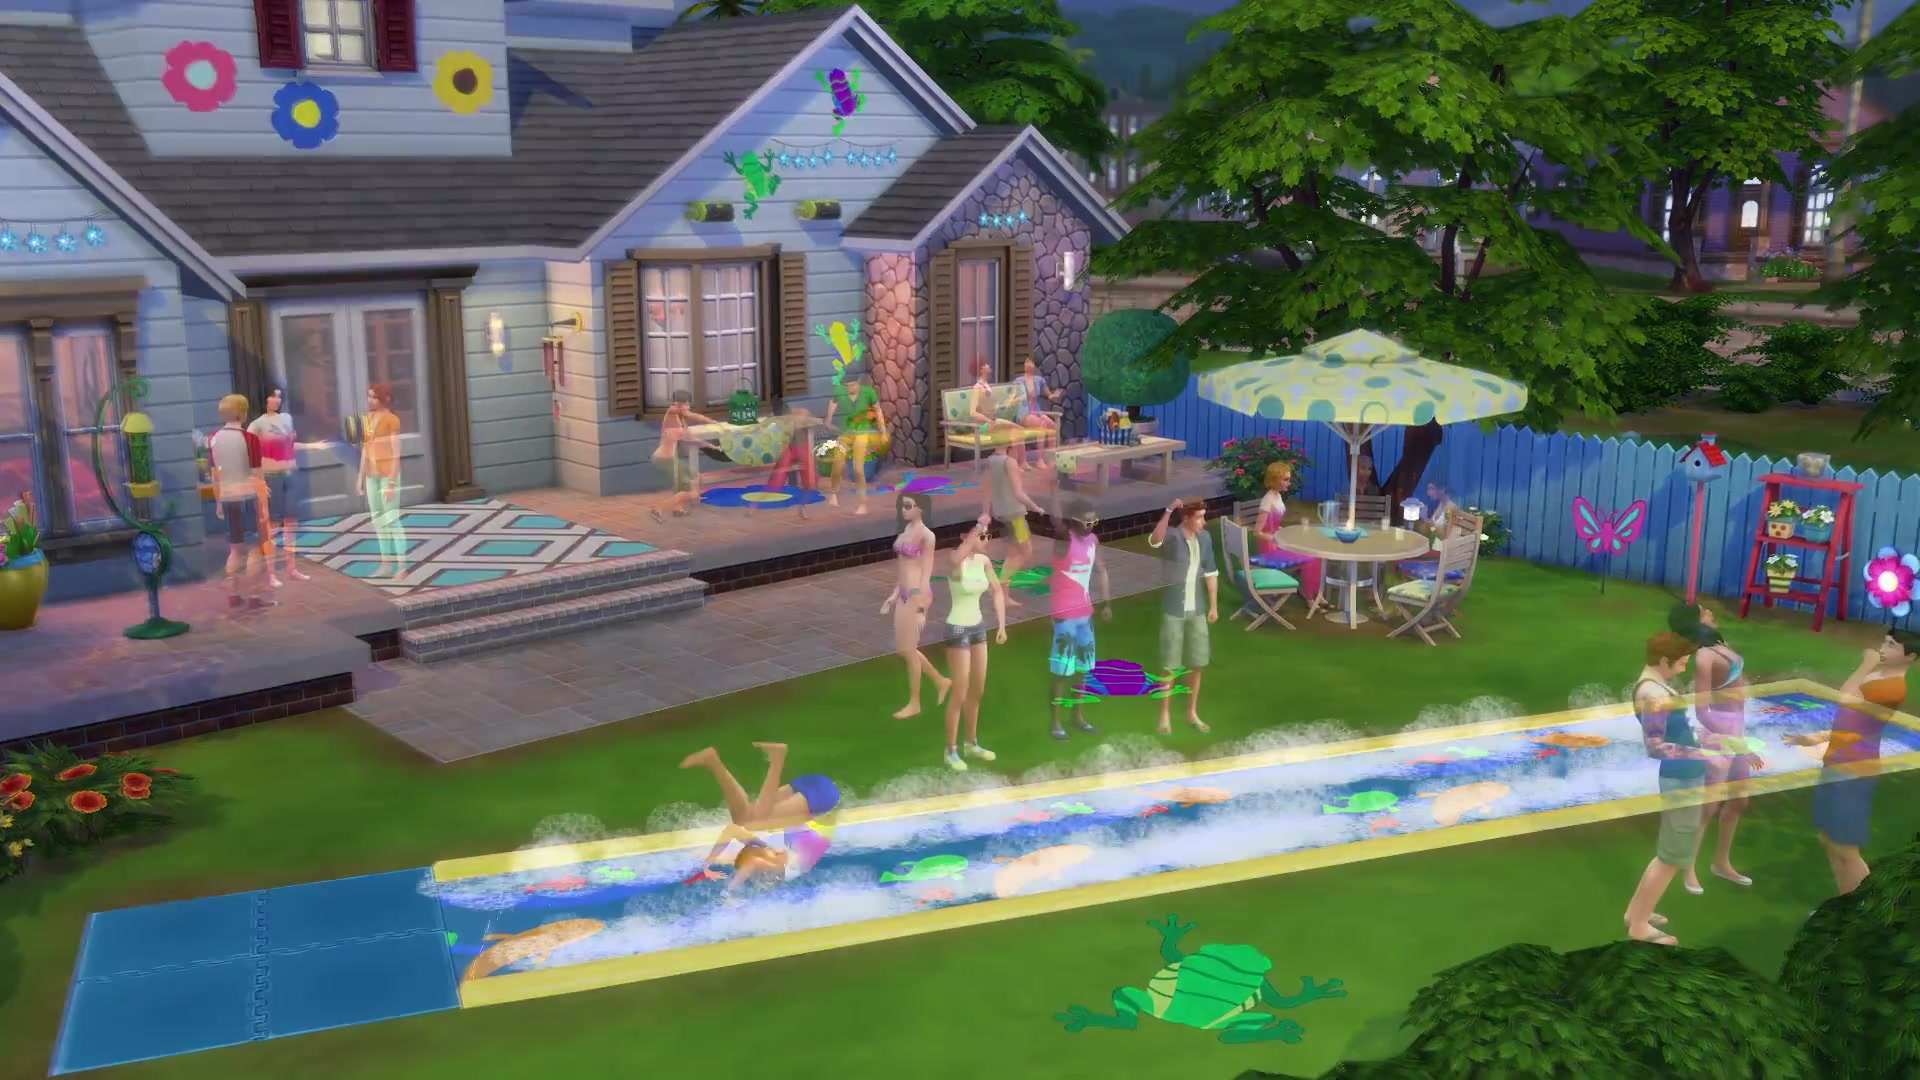 features of the sims 4 backyard stuff free downloa d if you are a